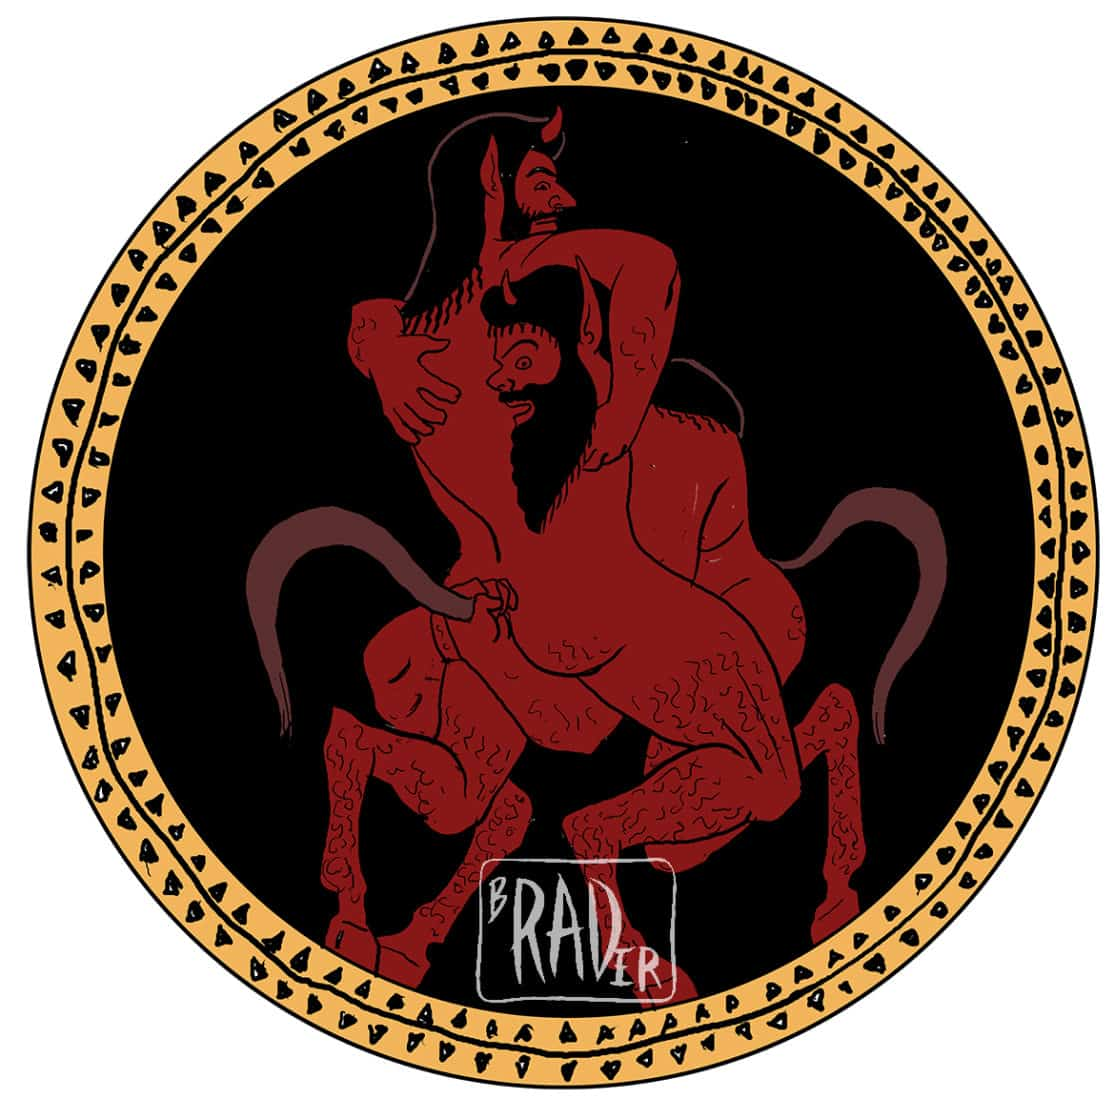 Richard's Satyr, painted image of wrestling satyrs in style of Greek red-figure pottery, gay erotica, bears